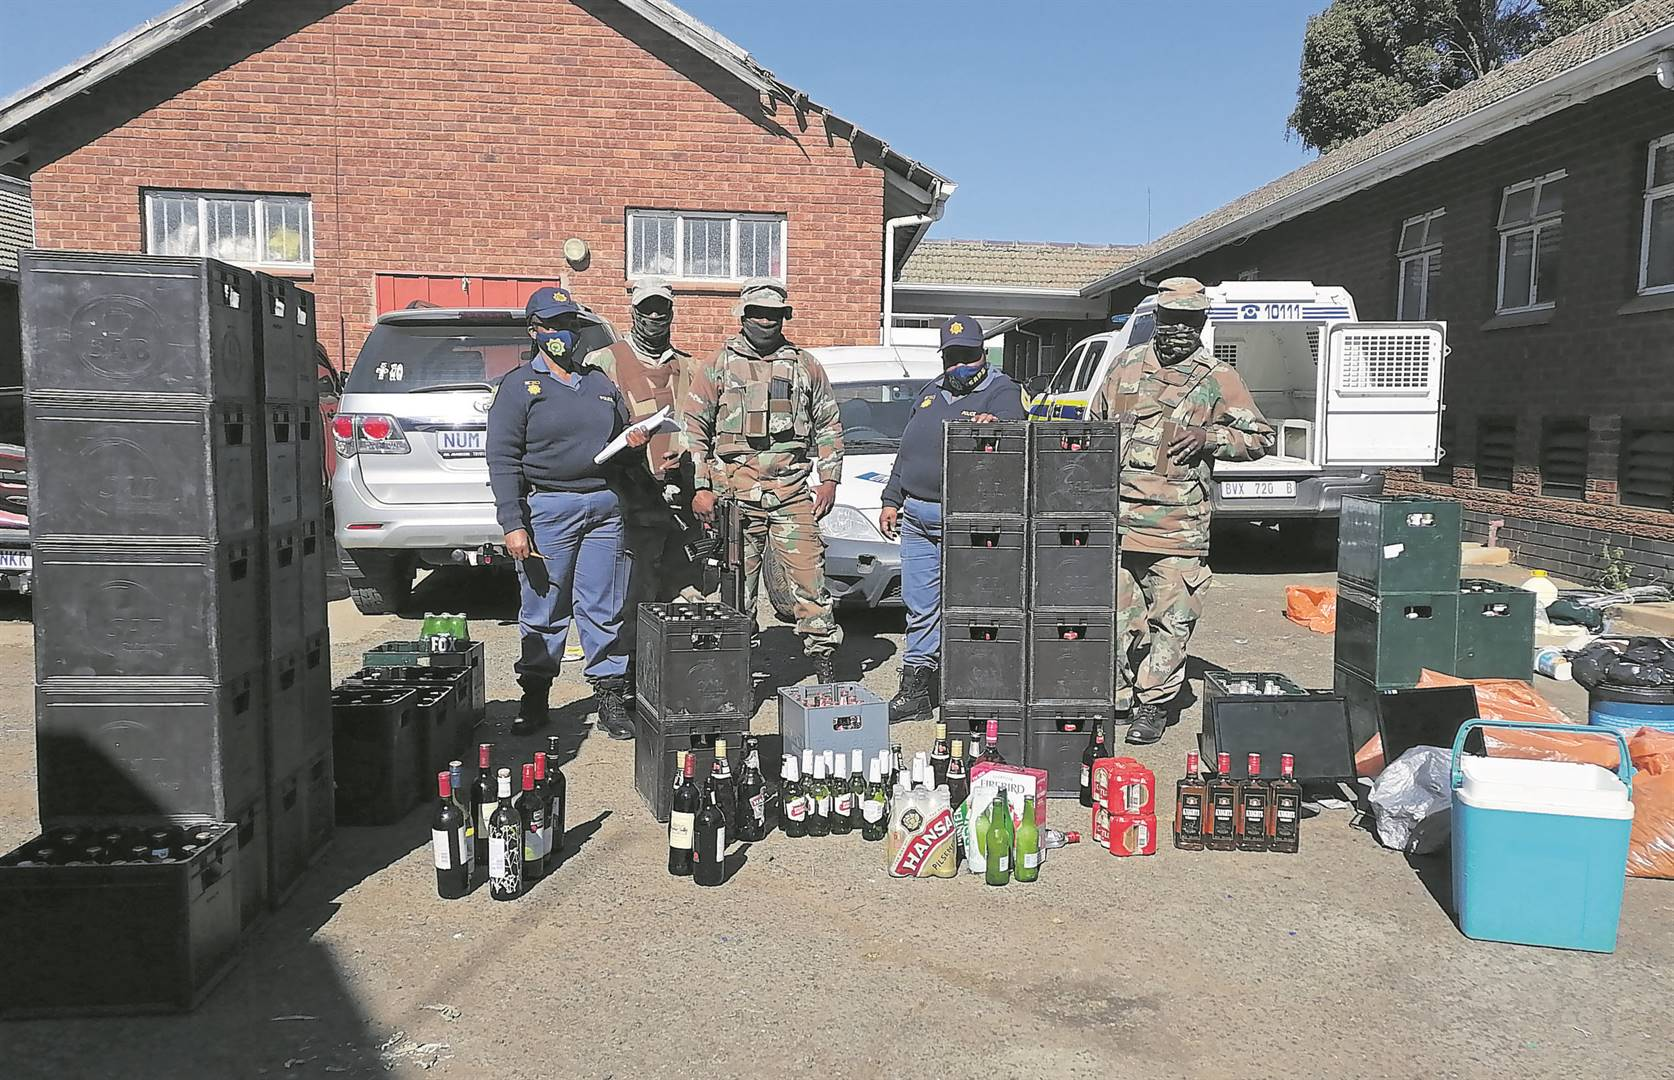 Members of the SANDF 4 South African Infantry Battalion and Greytown police with some of the recovered loot.